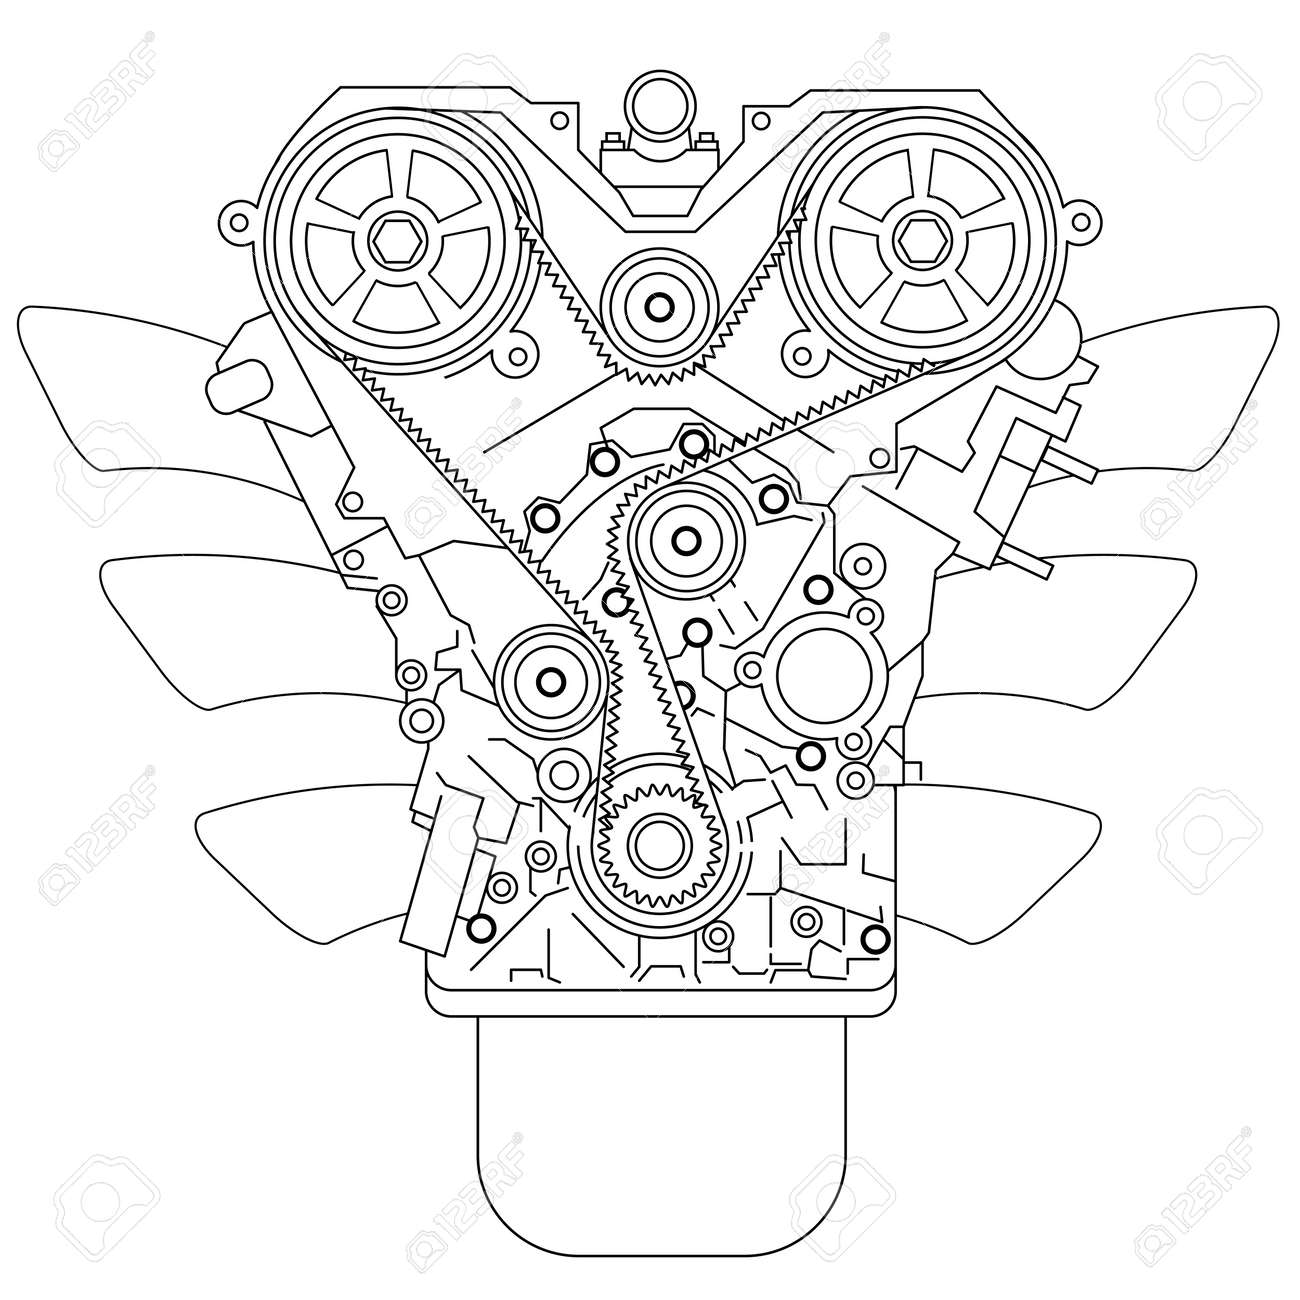 Internal combustion engine Stock Vector - 14728980